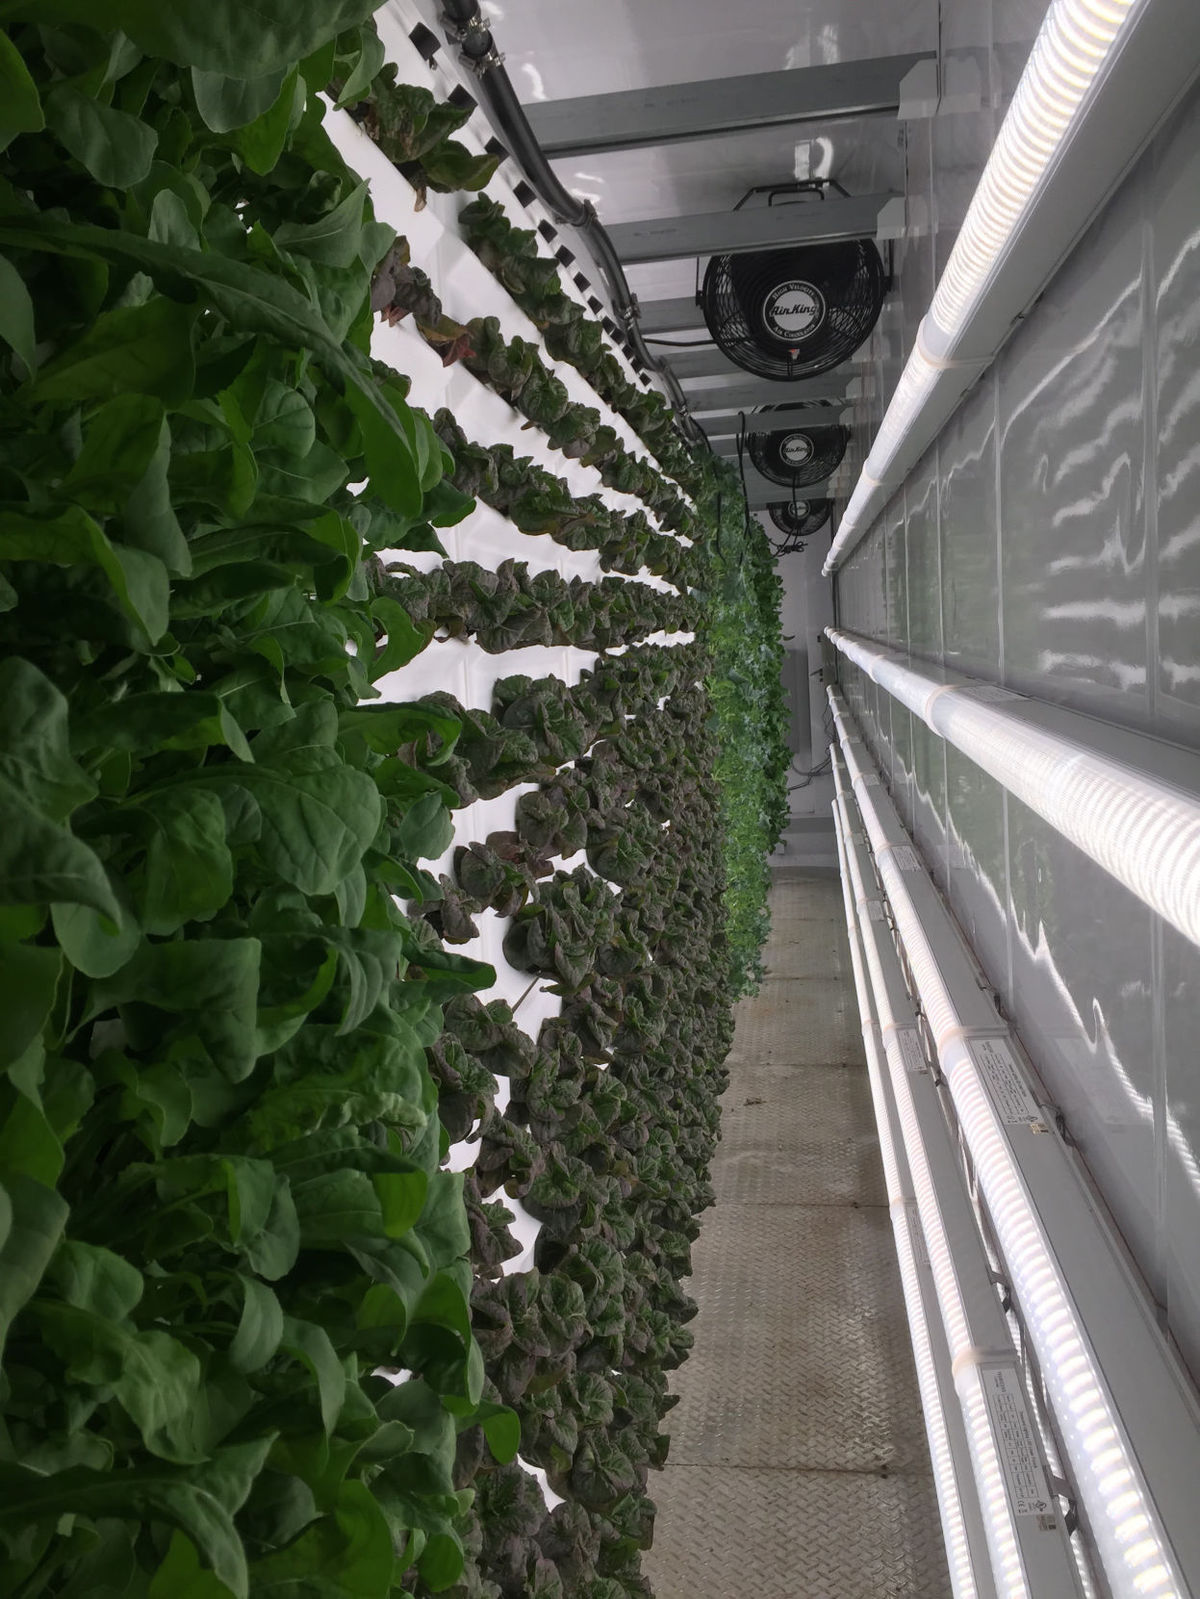 Tiger Corner Farms grows more than 40,000 heads of lettuce a year inside shipping containers in Summerville. Tony Bertauski/Provided   Tony Bertauski